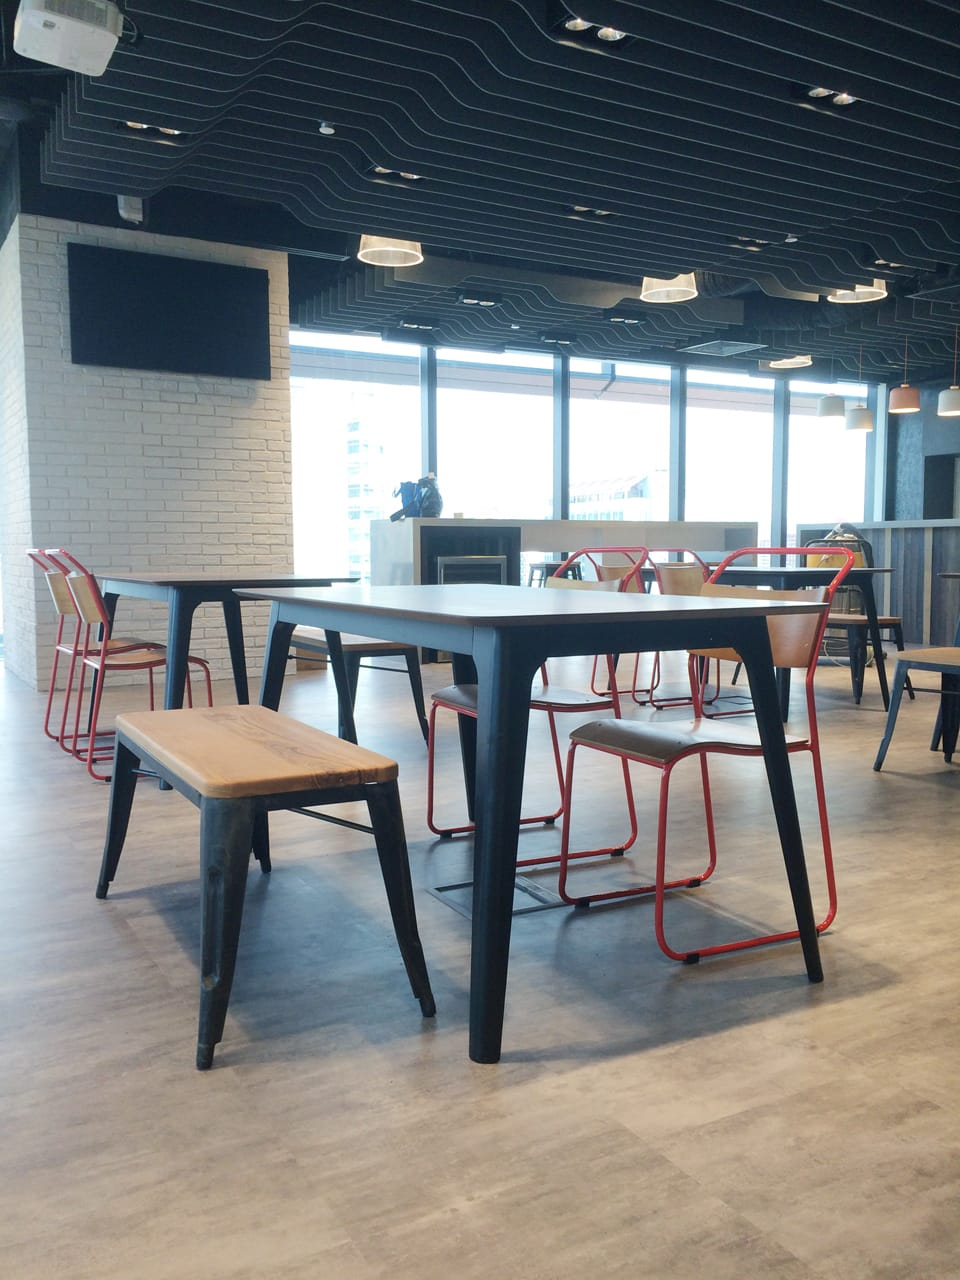 Expedia - New Bridge Road | Products Seen: [Fuji Dining Table – W1500 & Dojo Bench No Back - Wood + Rust]